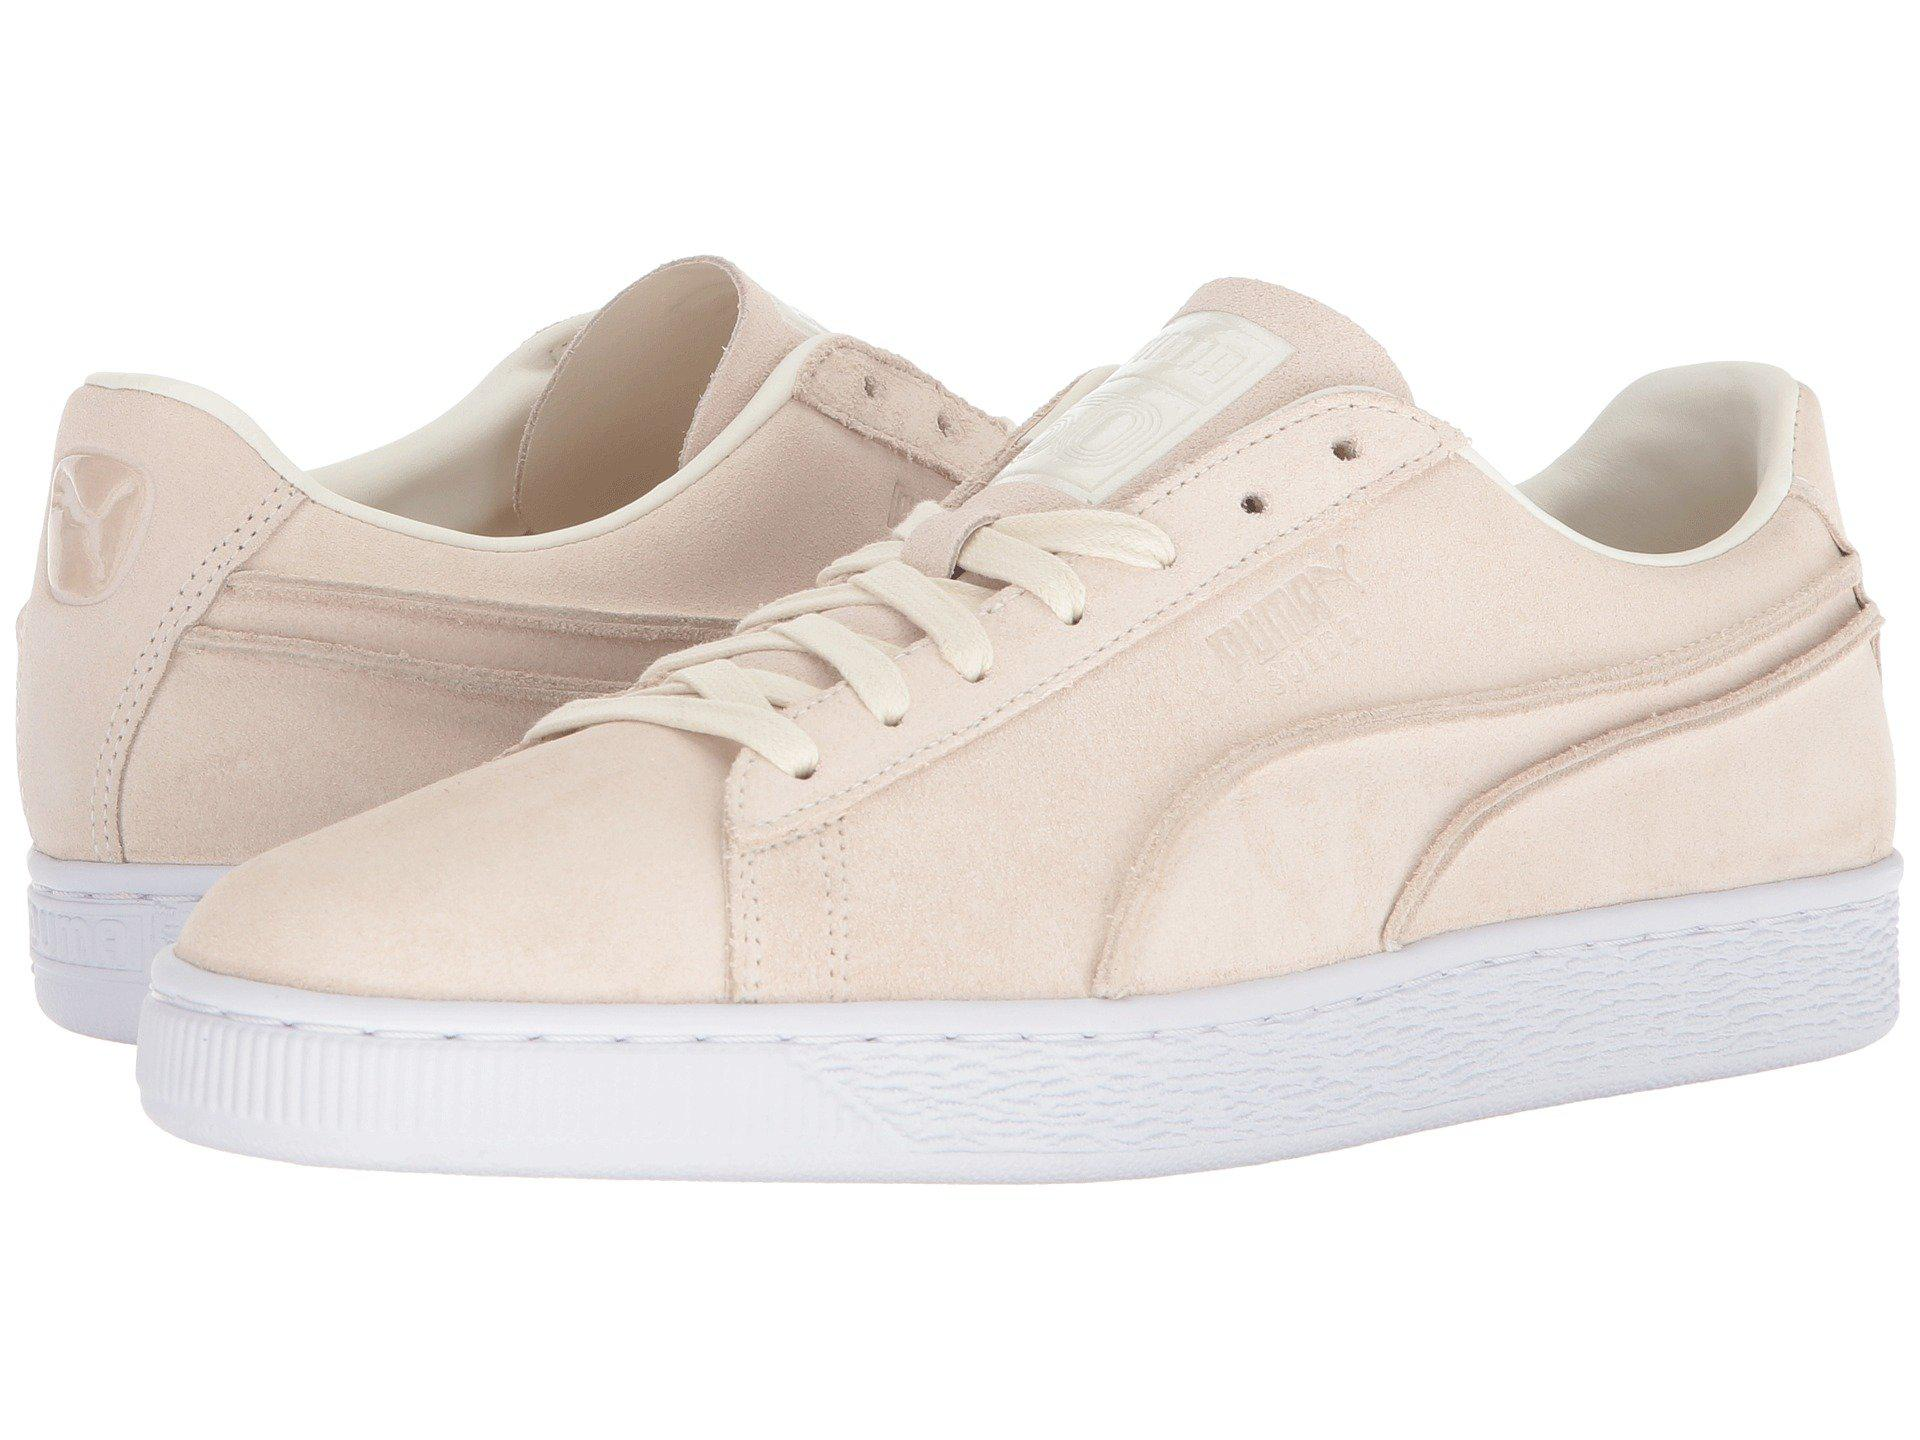 Puma Men's Classic Exposed Seams Suede Lace Up Sneakers WW9Wc